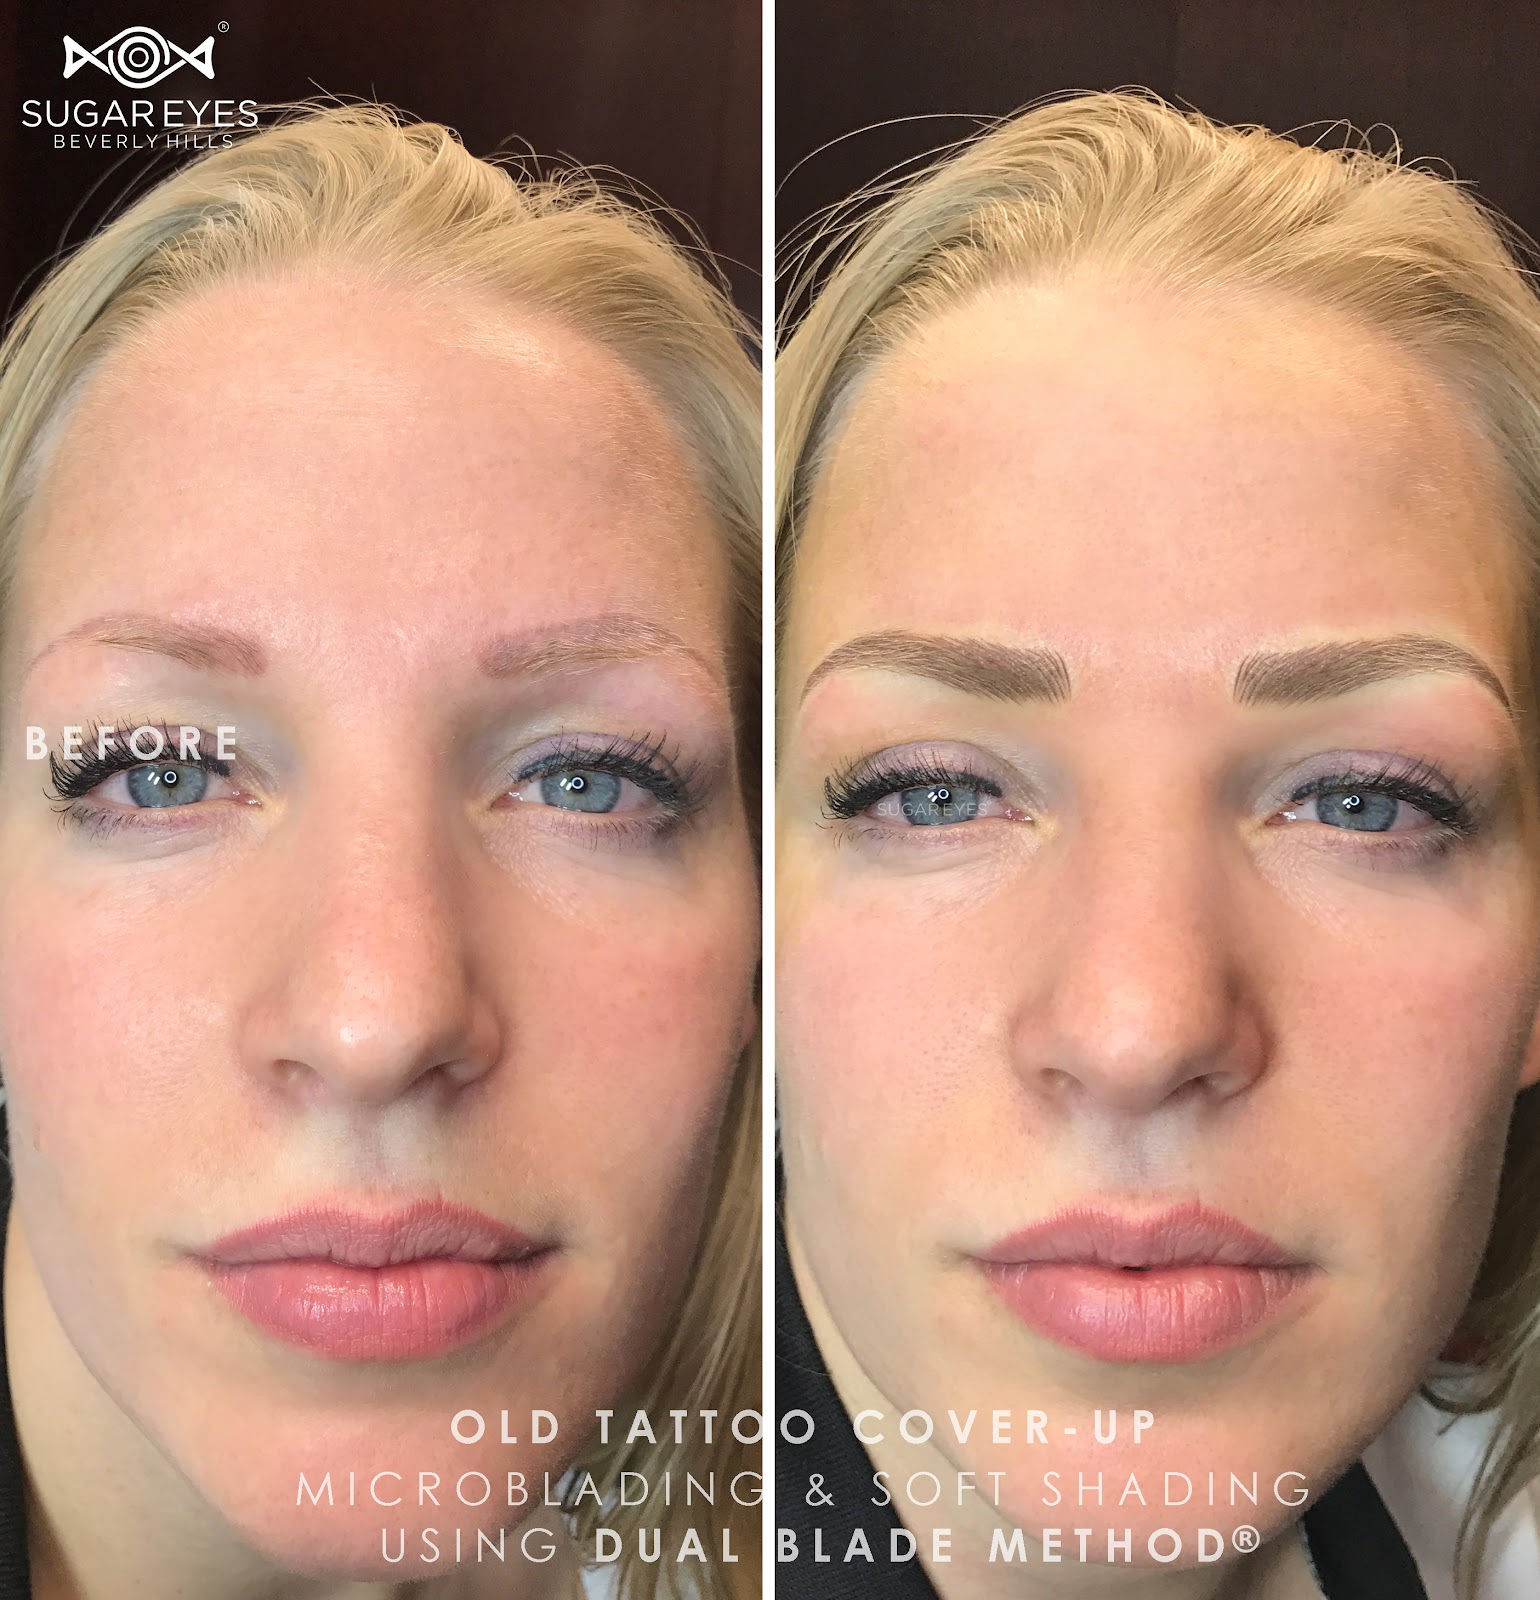 Microblading or tattooing